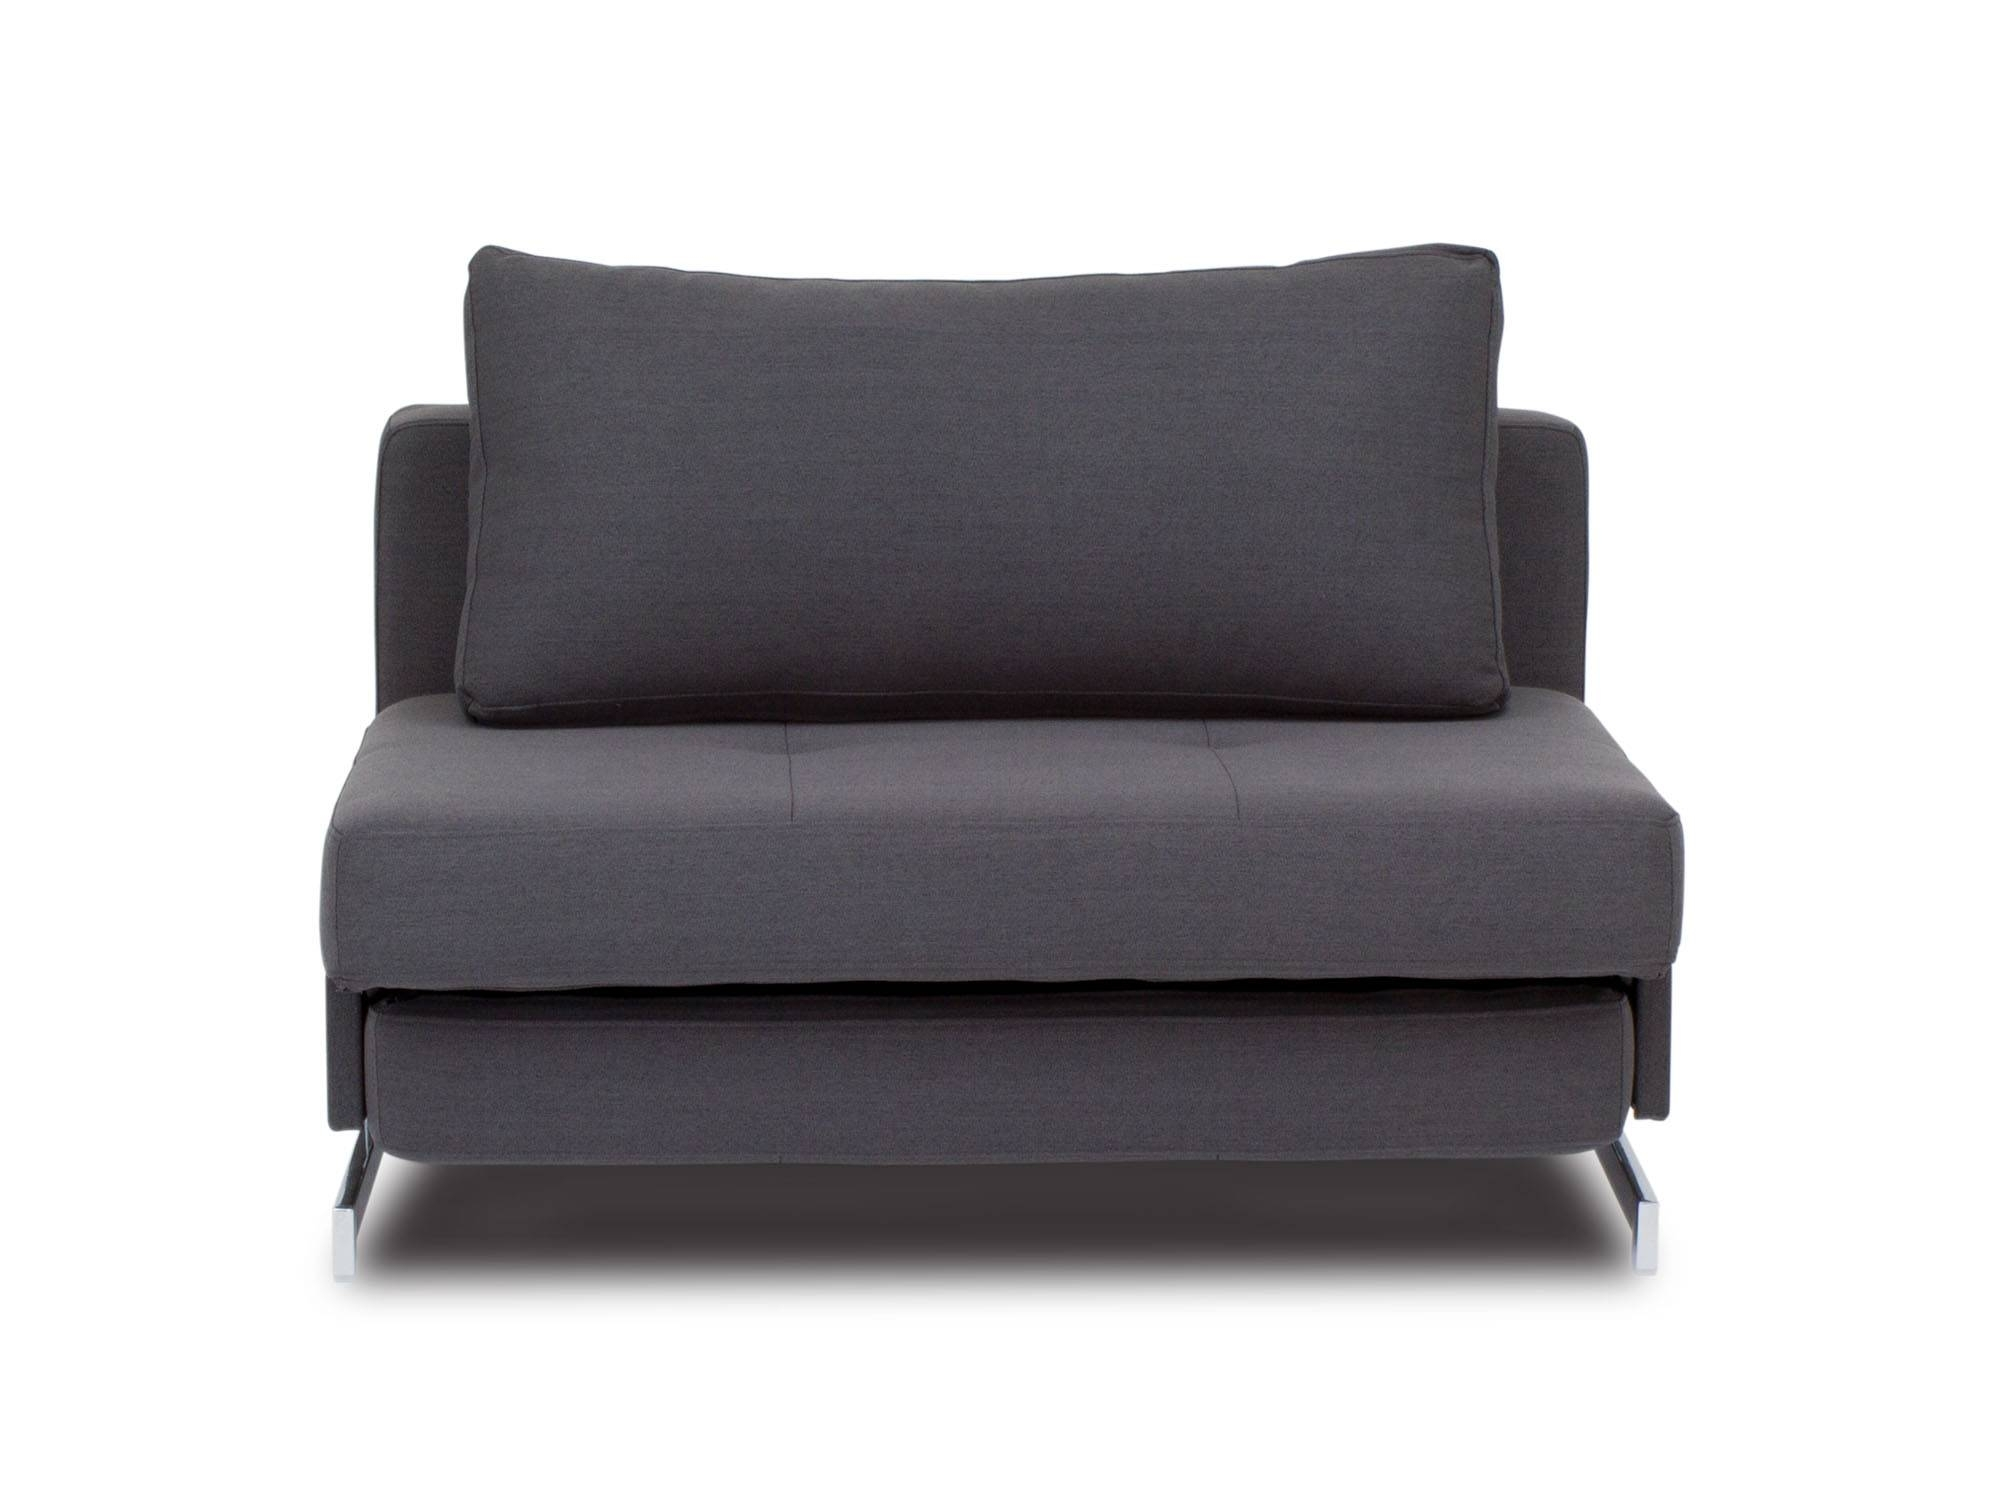 Single Sofa Beds Single Sofa Sleeper Chair Connexions Store Connexions Store